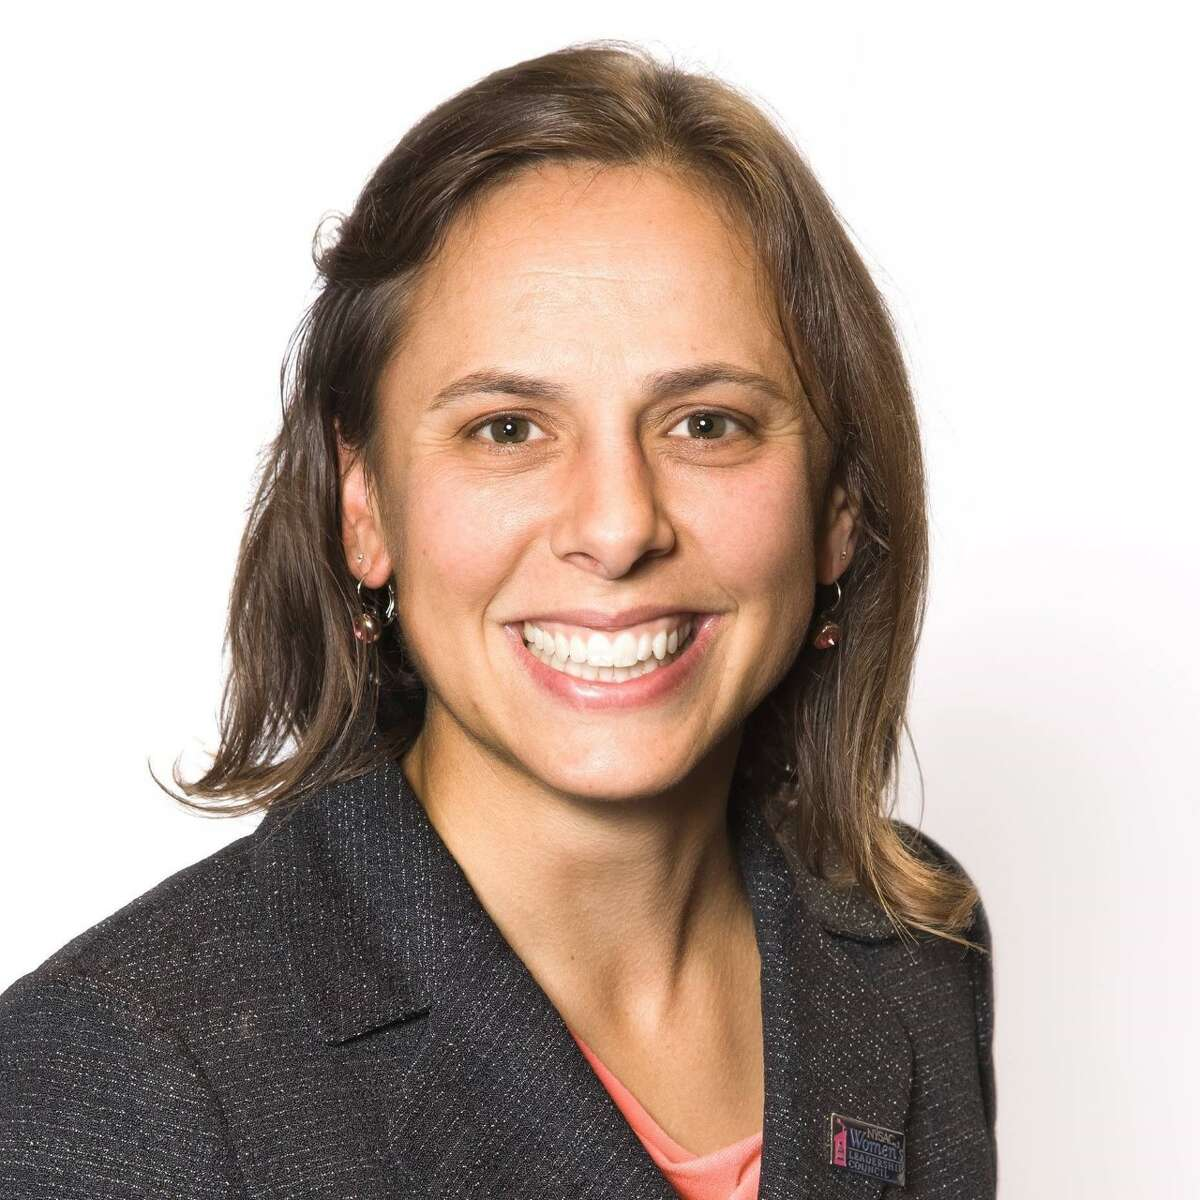 Claudia Braymer, who is running as a Democrat and Working Families candidate, said she will prioritize three issues if elected: affordable housing, improving infrastructure and combating the negative effects of climate change.